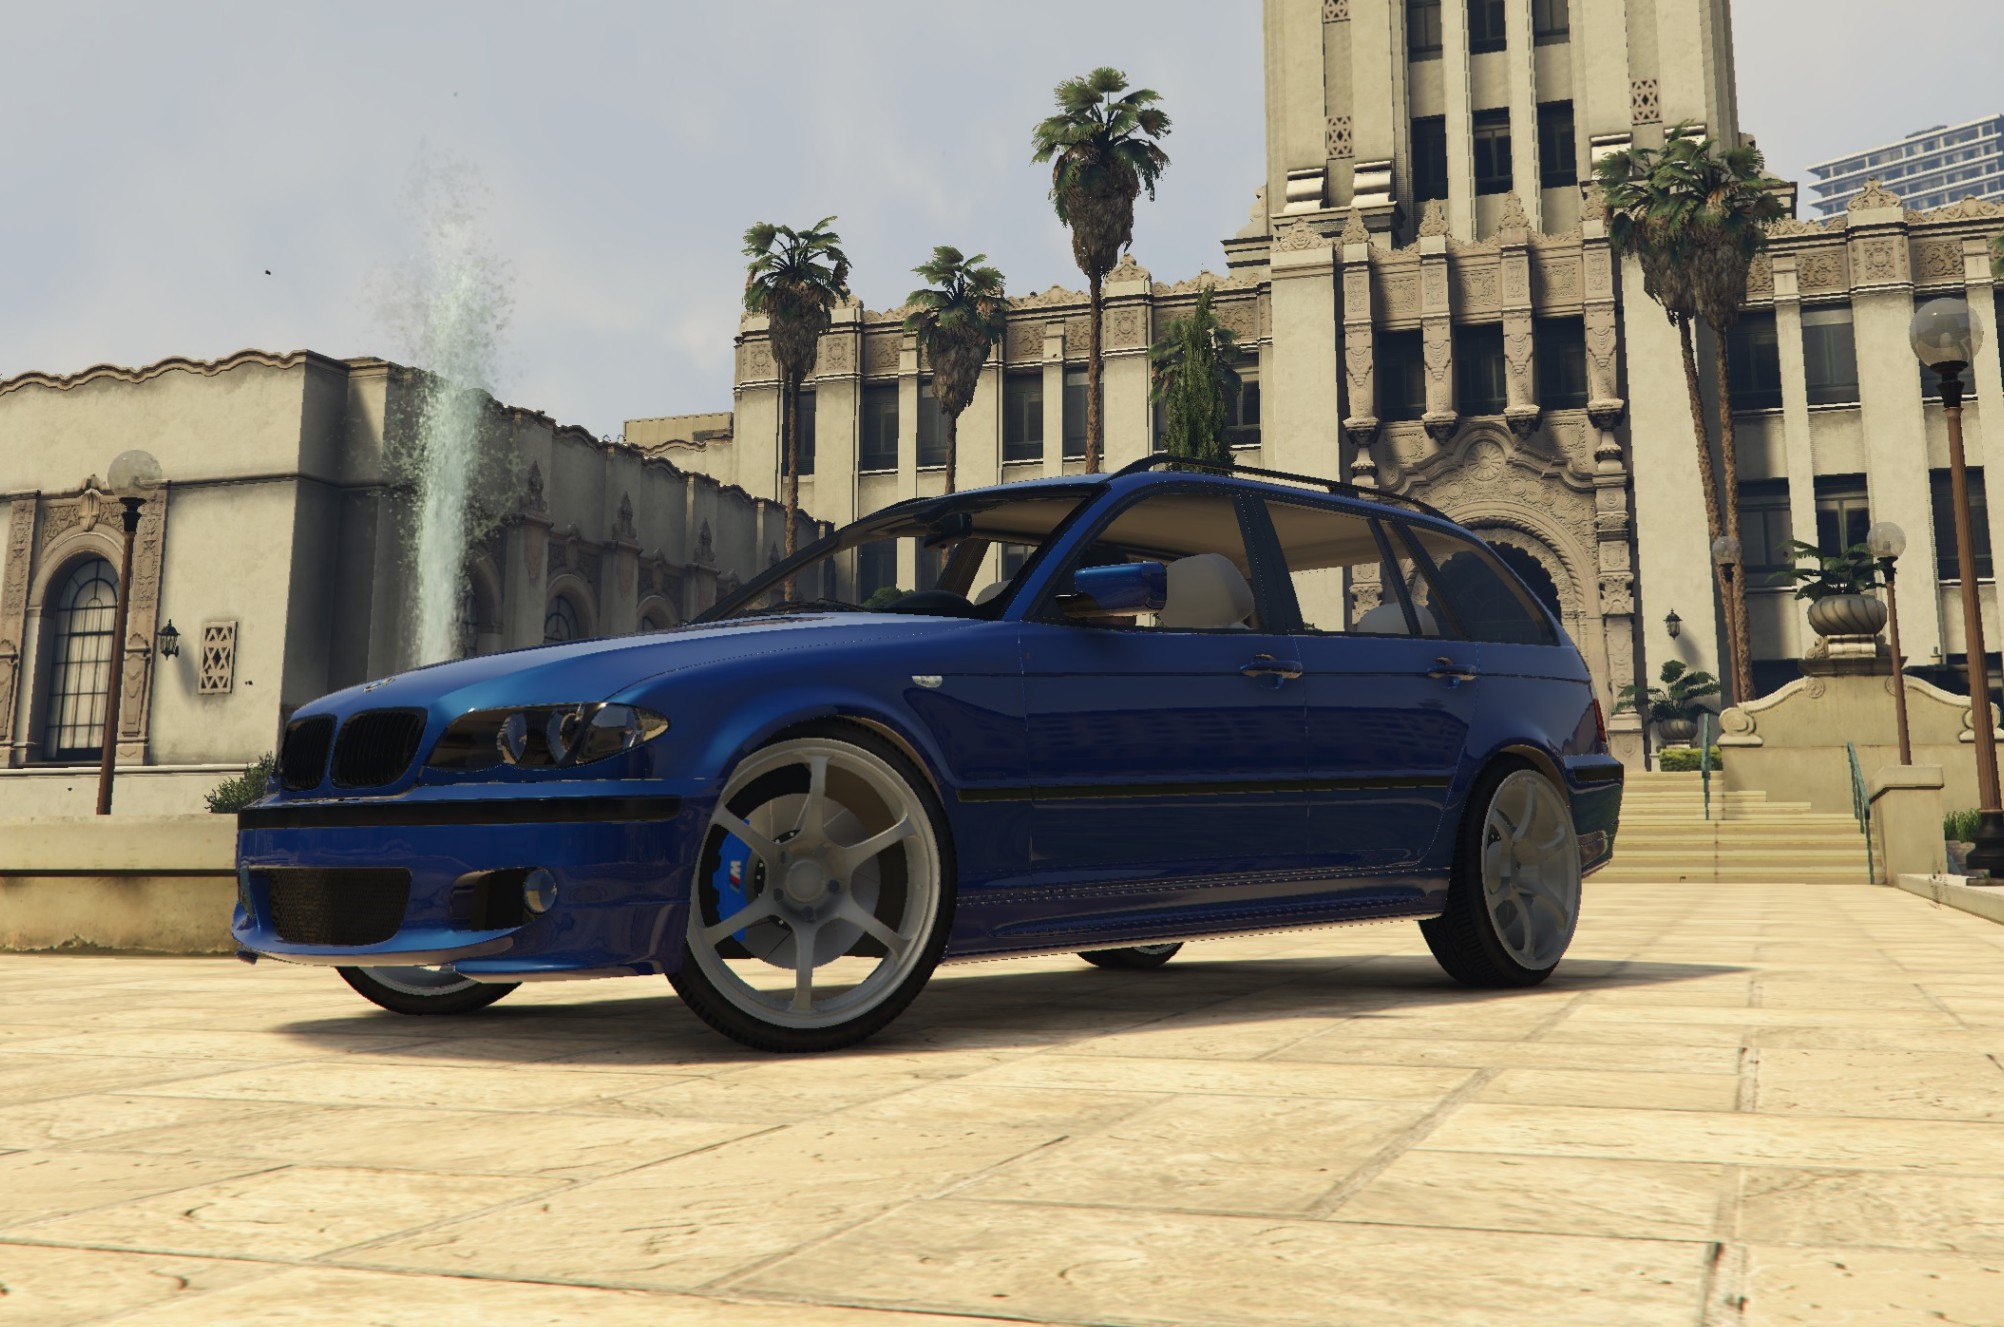 Bmw 3 Series Touring E46m Facelift Pack Luxe Gta5 Mods Com